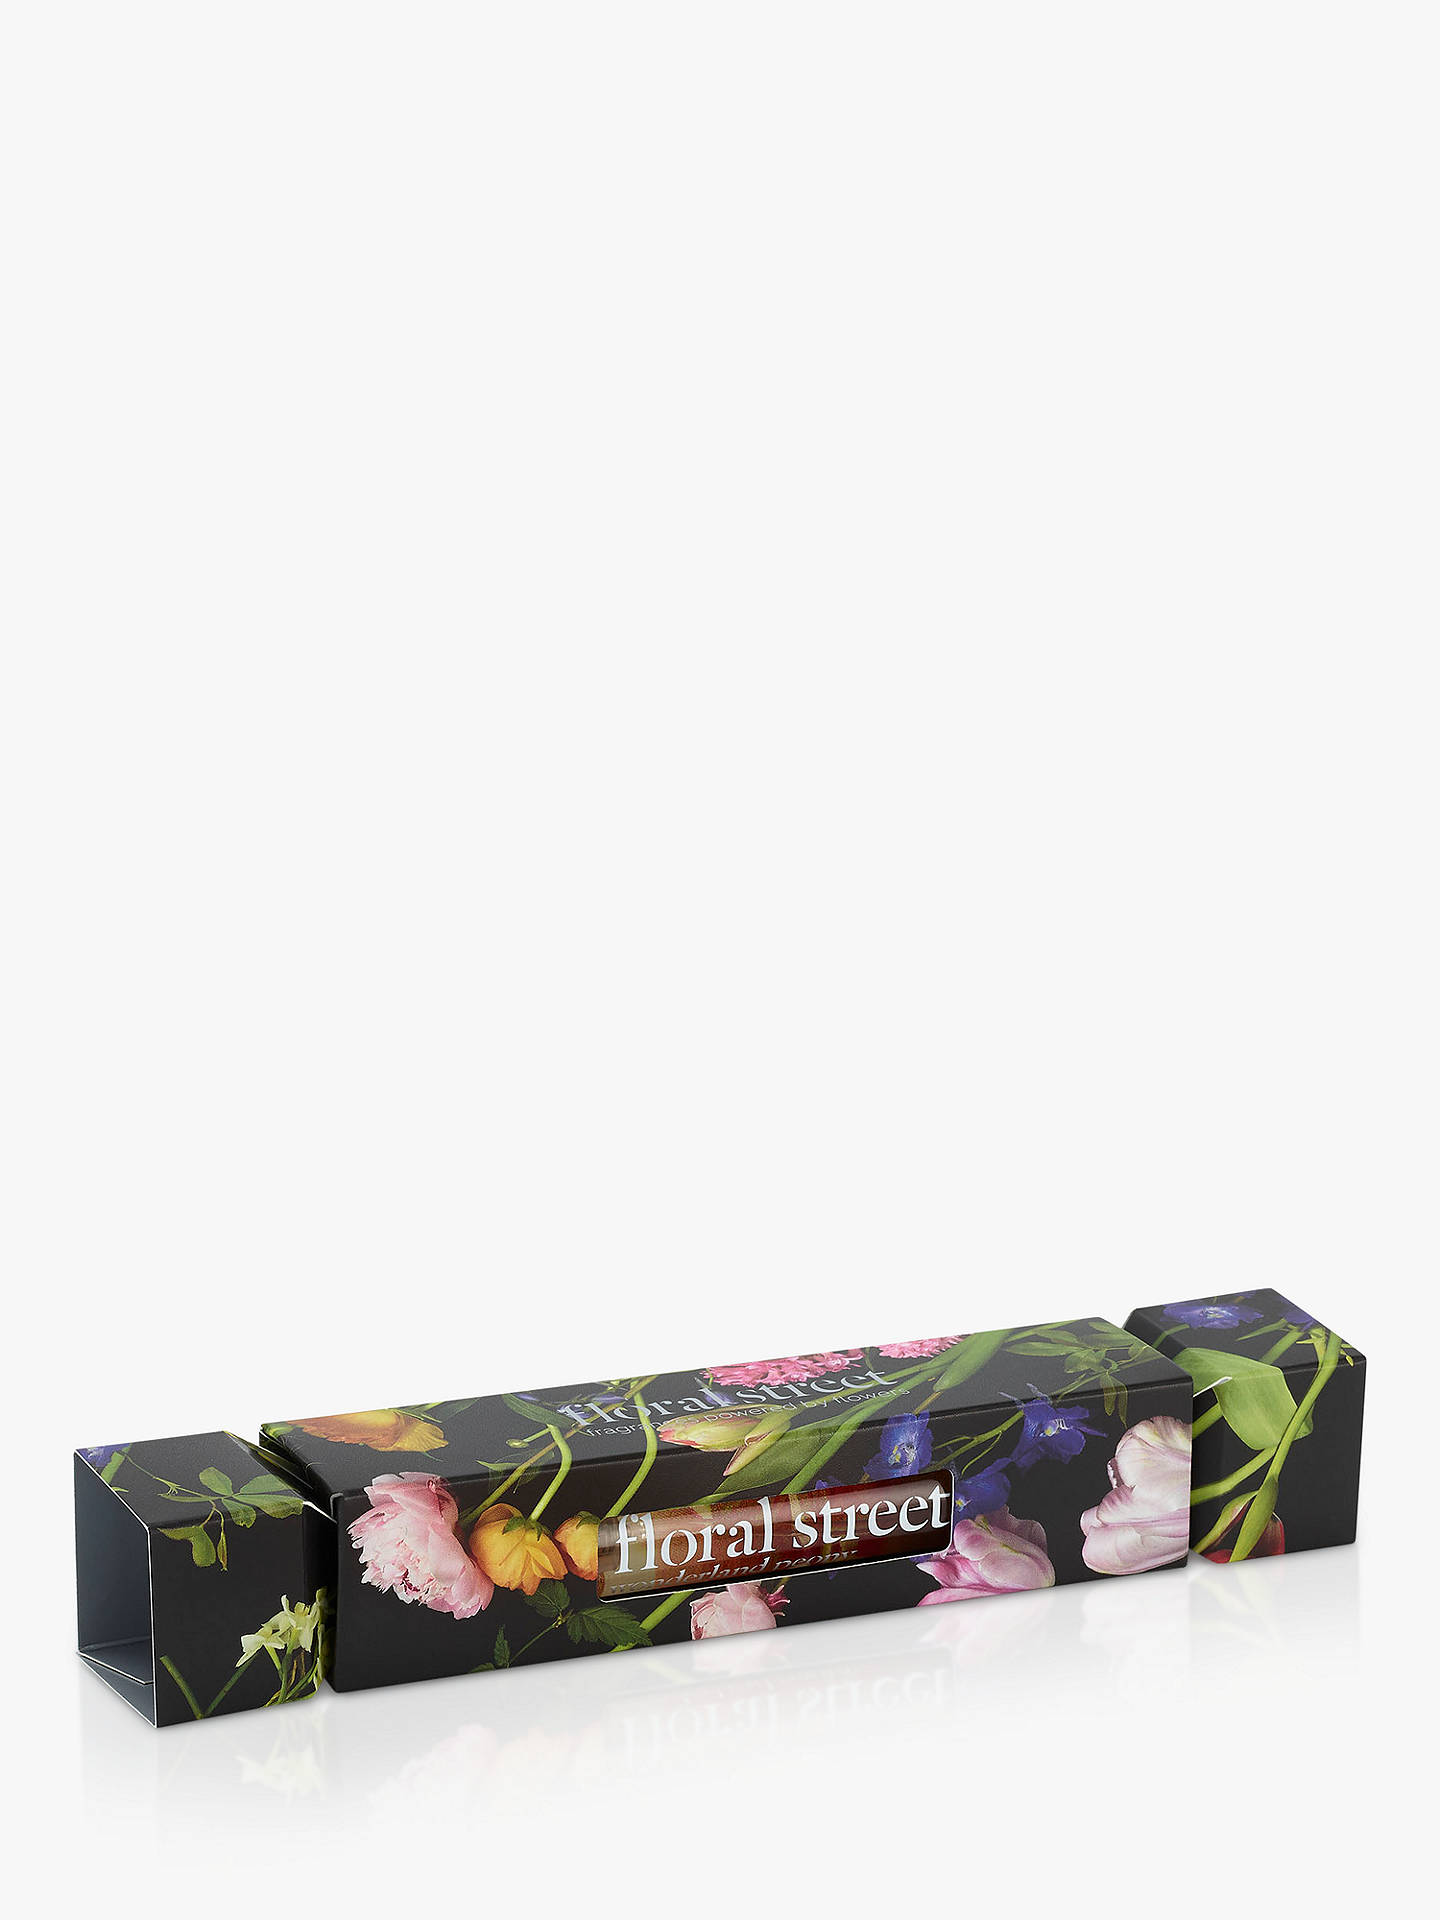 Buy Floral Street Wonderland Peony Eau de Parfum 10ml Cracker Fragrance Gift Set Online at johnlewis.com